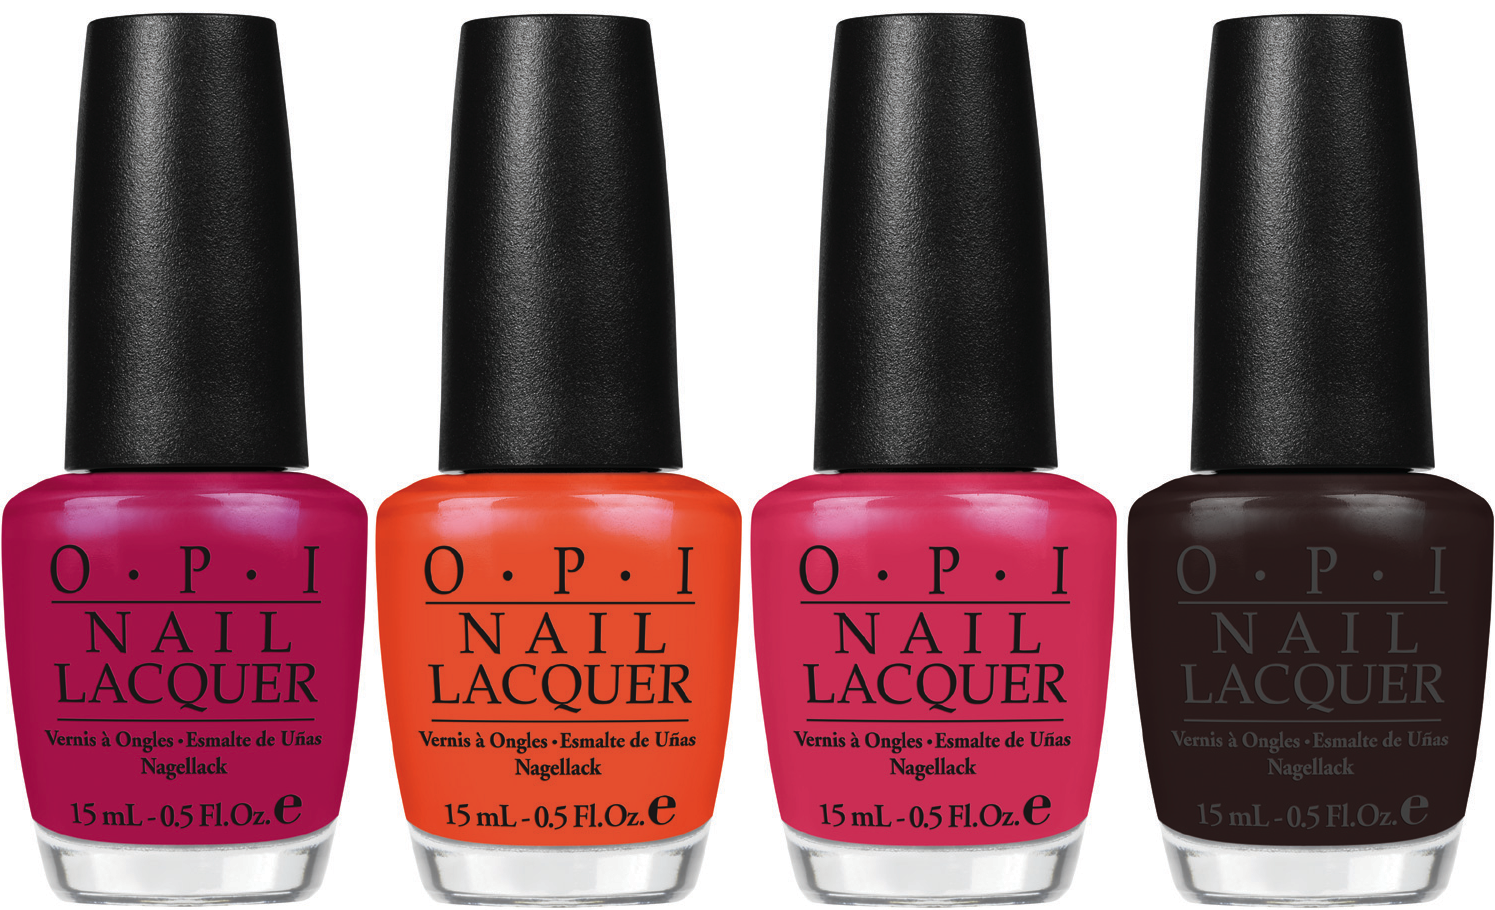 OPI Texas Spring Summer 2011 Preview